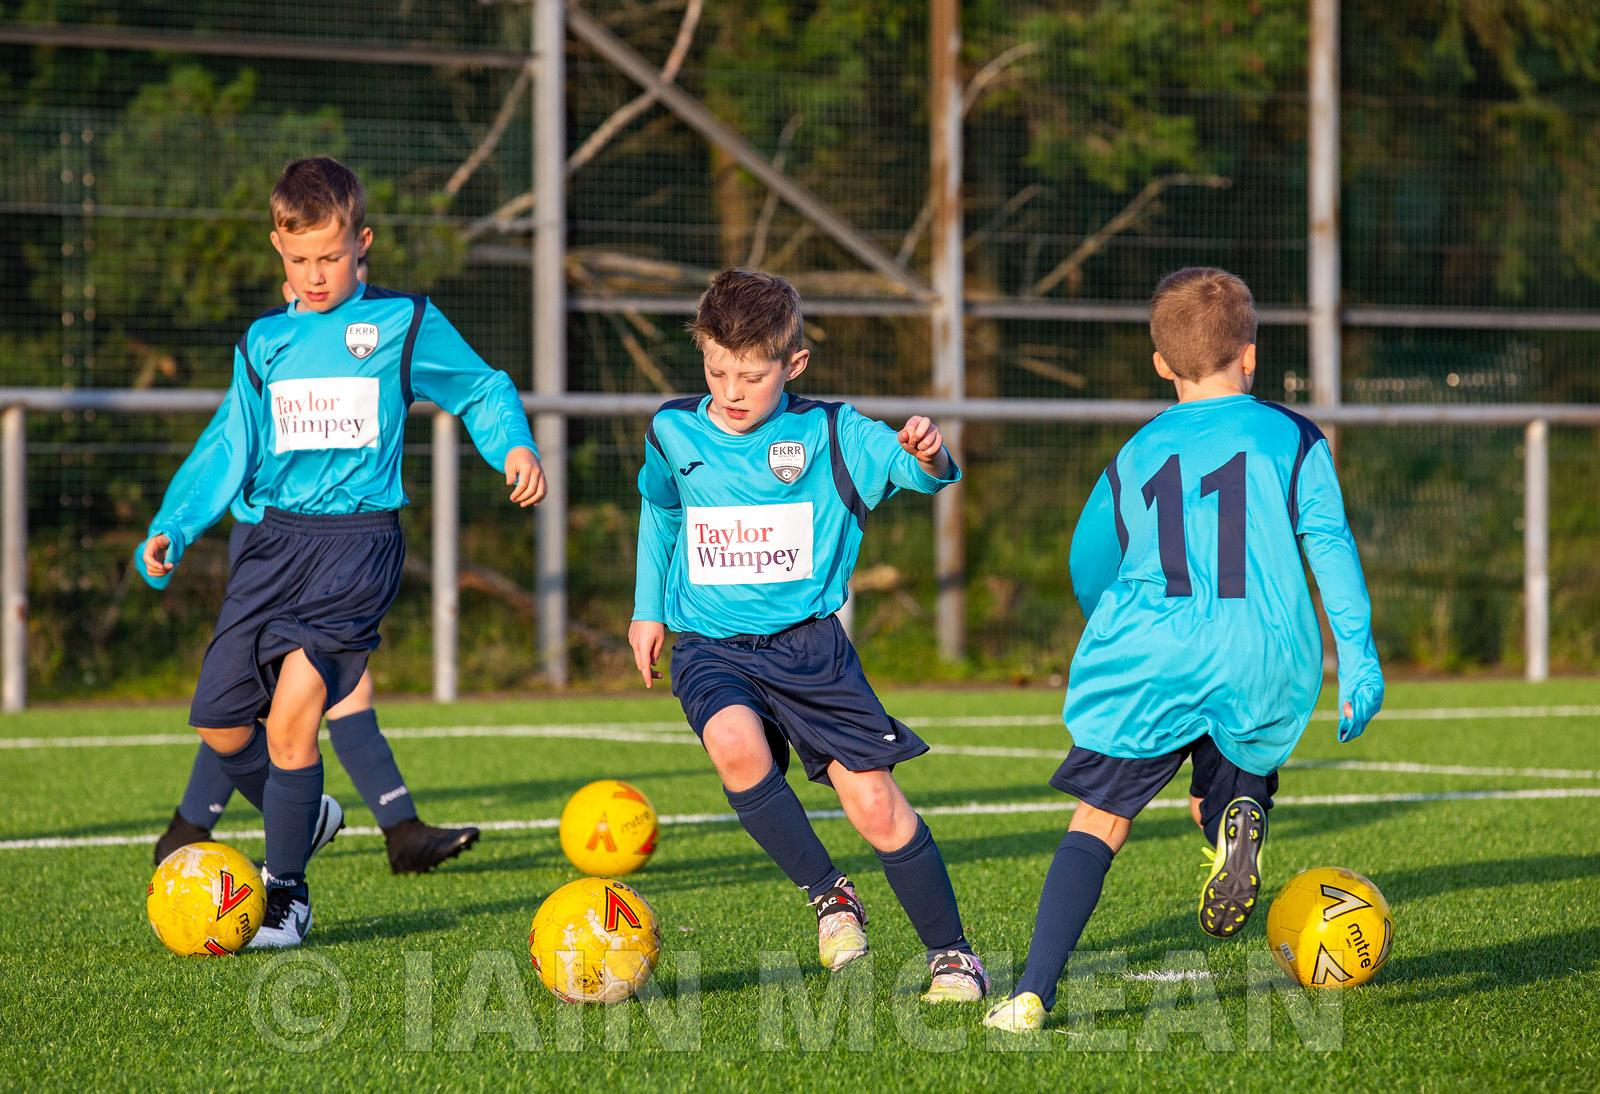 Ballerup Recreation Pitches, East Kilbride..17.9.20..Taylor Wimpey have sponsored EKRR Youth 2011s with new strips..Here are ...